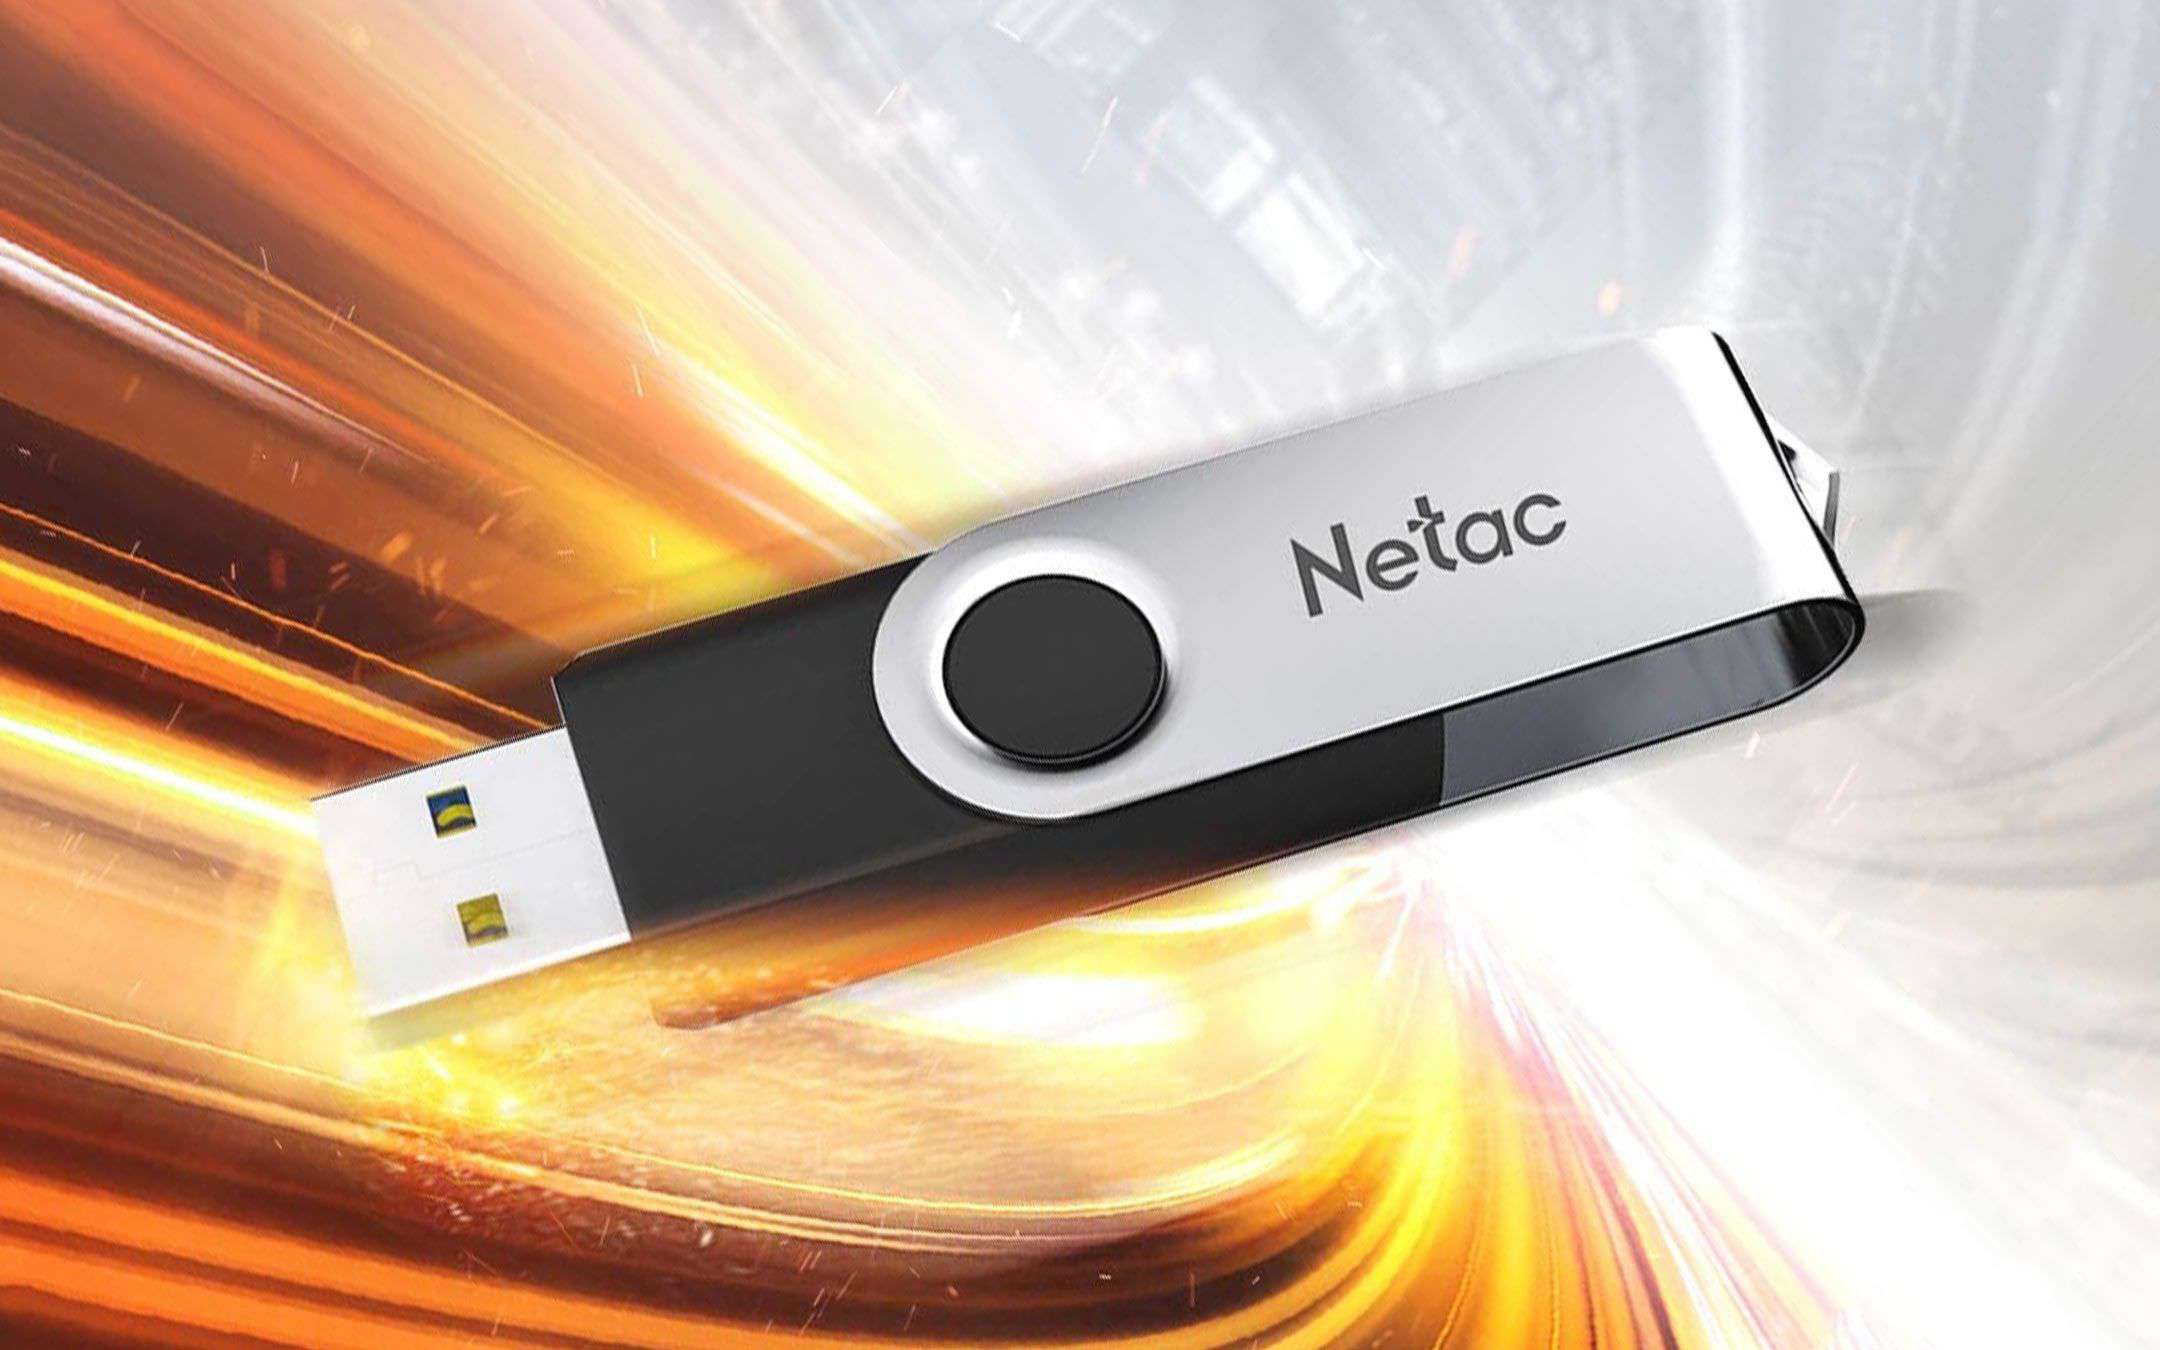 9.99 euros for the 64 GB USB 3 pendrive from Netac